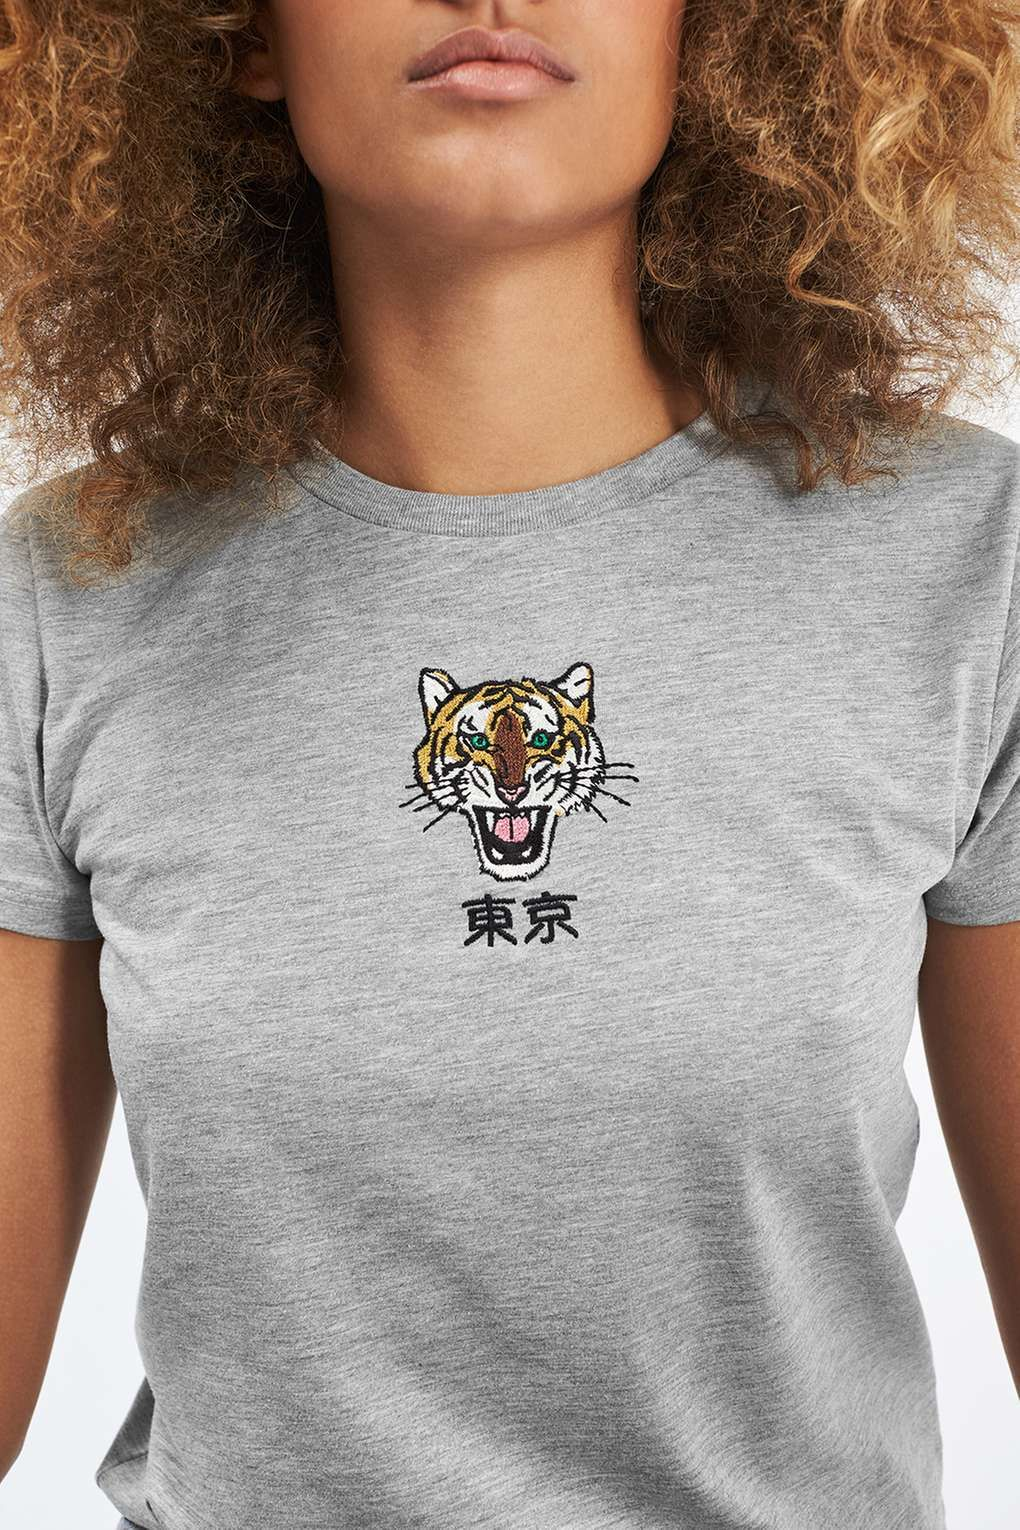 Tokyo Tiger T-Shirt by Tee & Cake